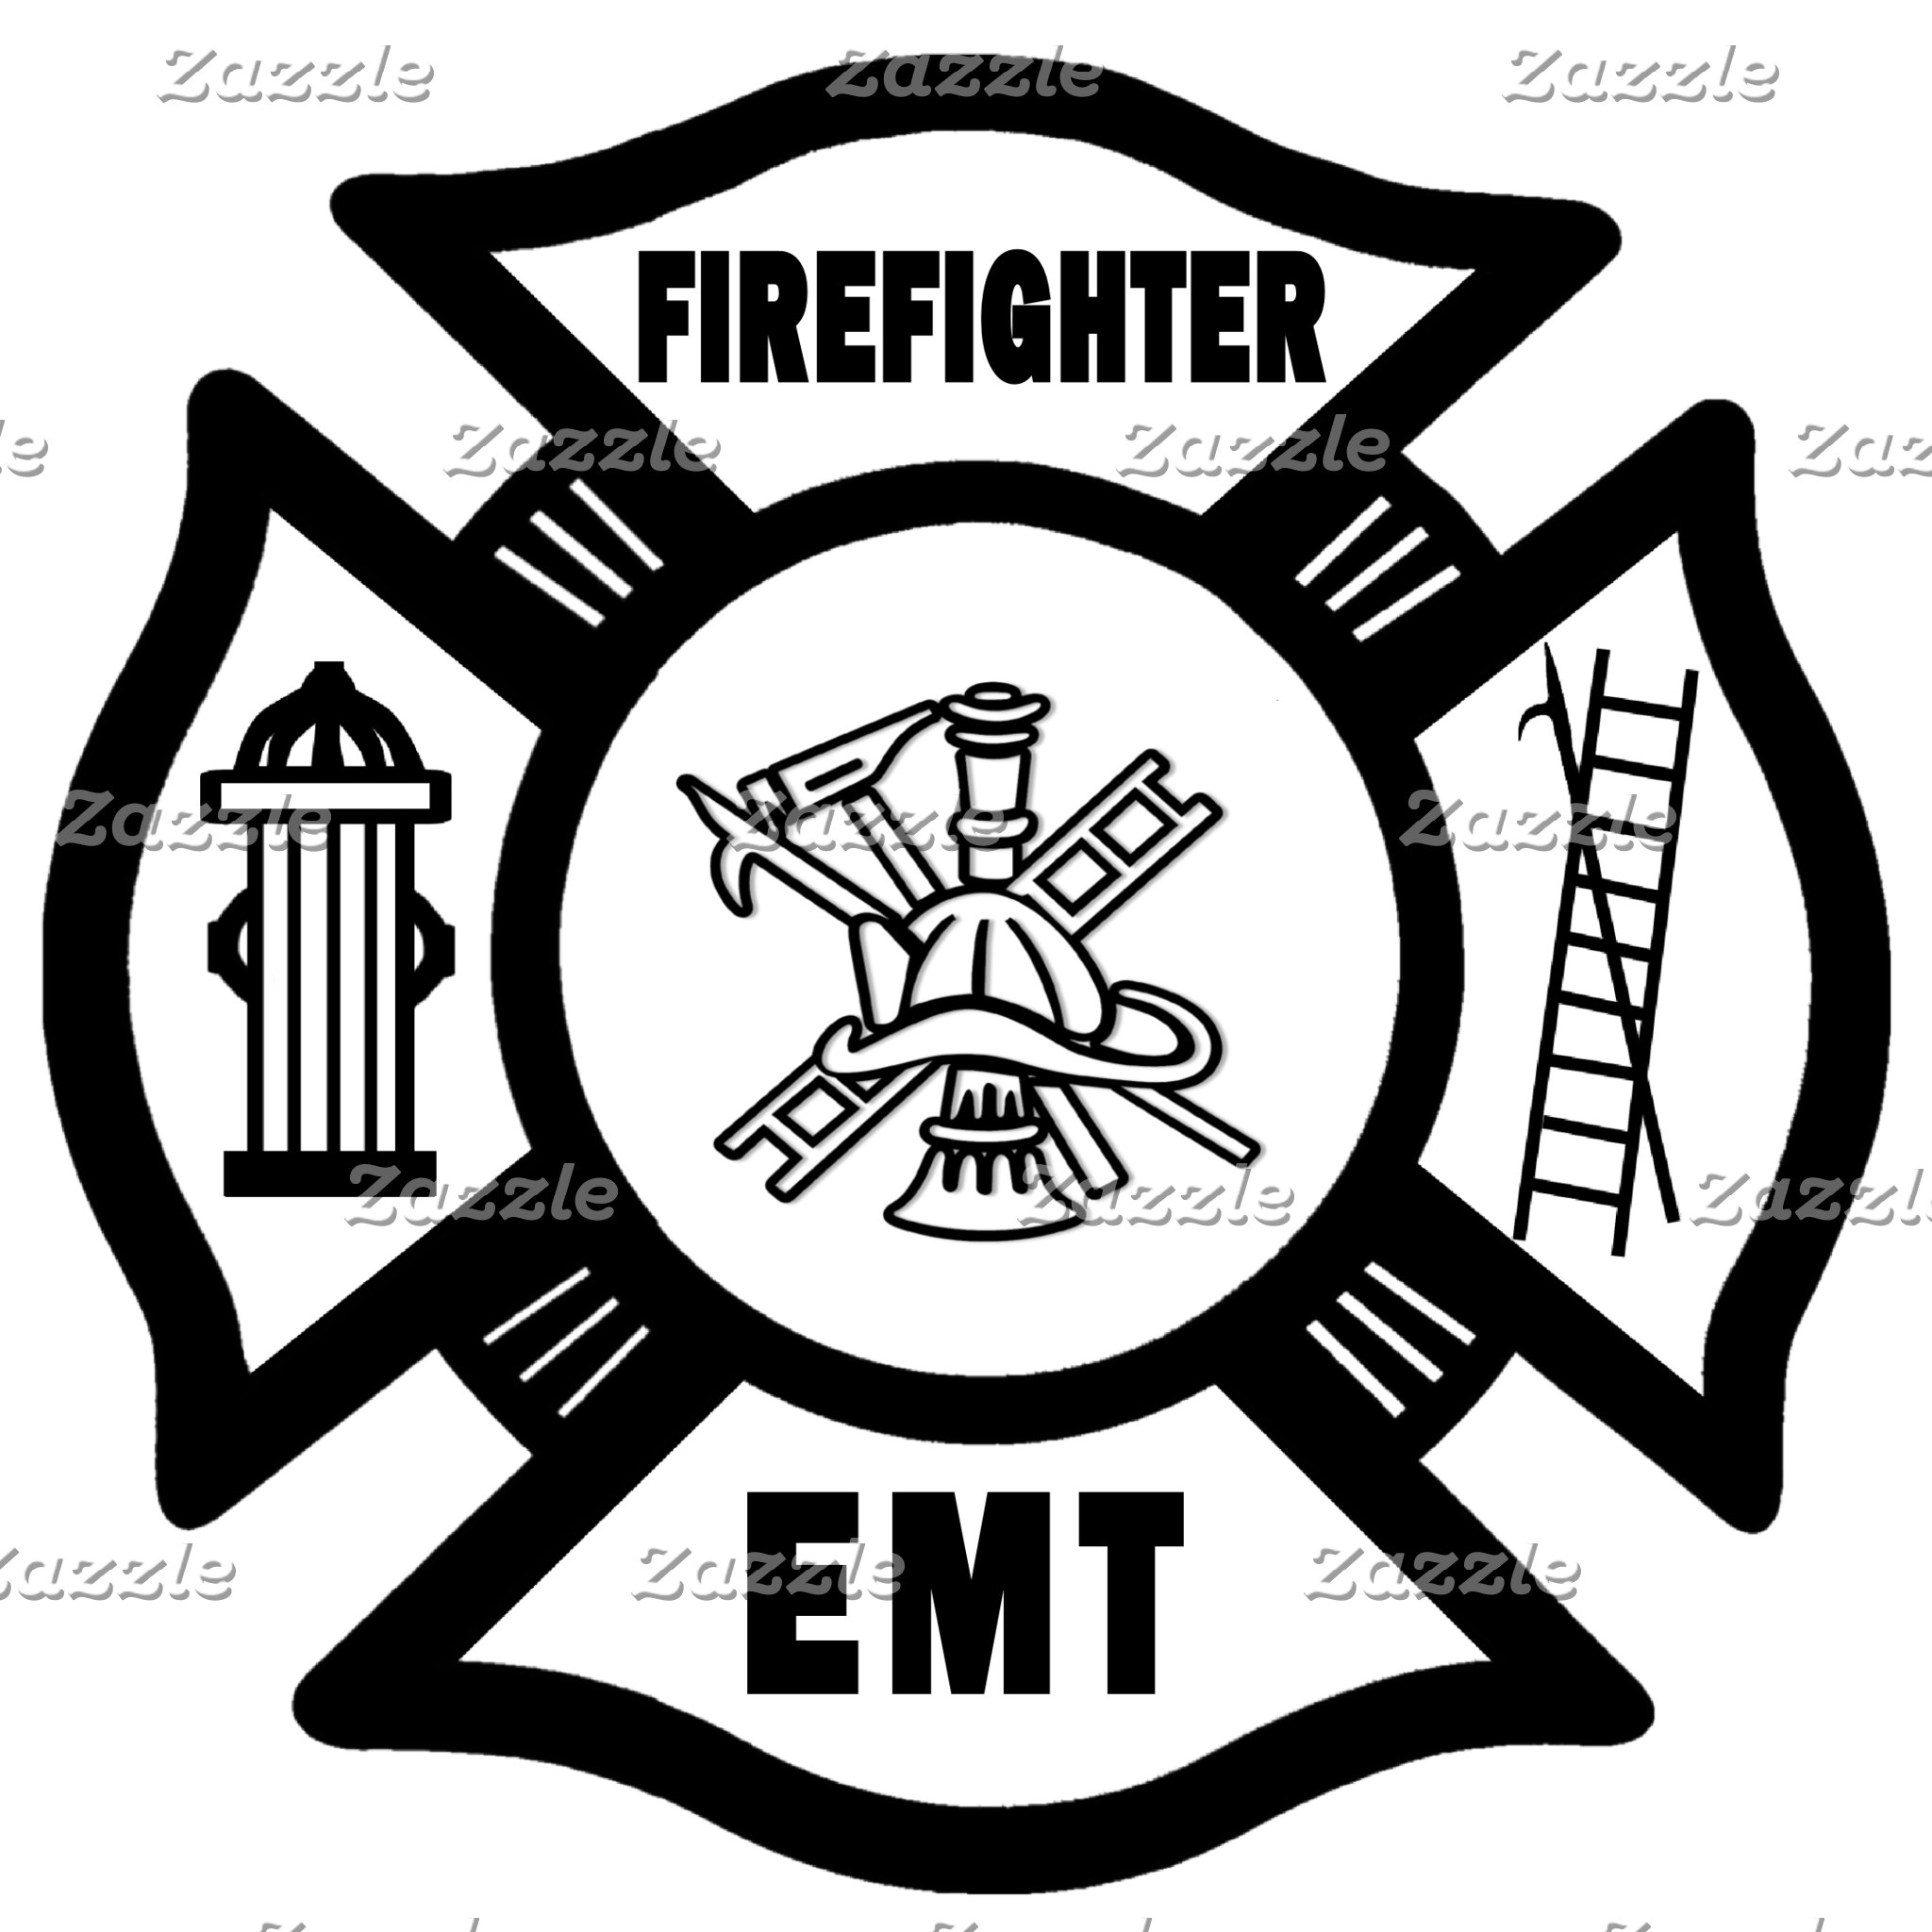 Fire Fighter EMT Maltese